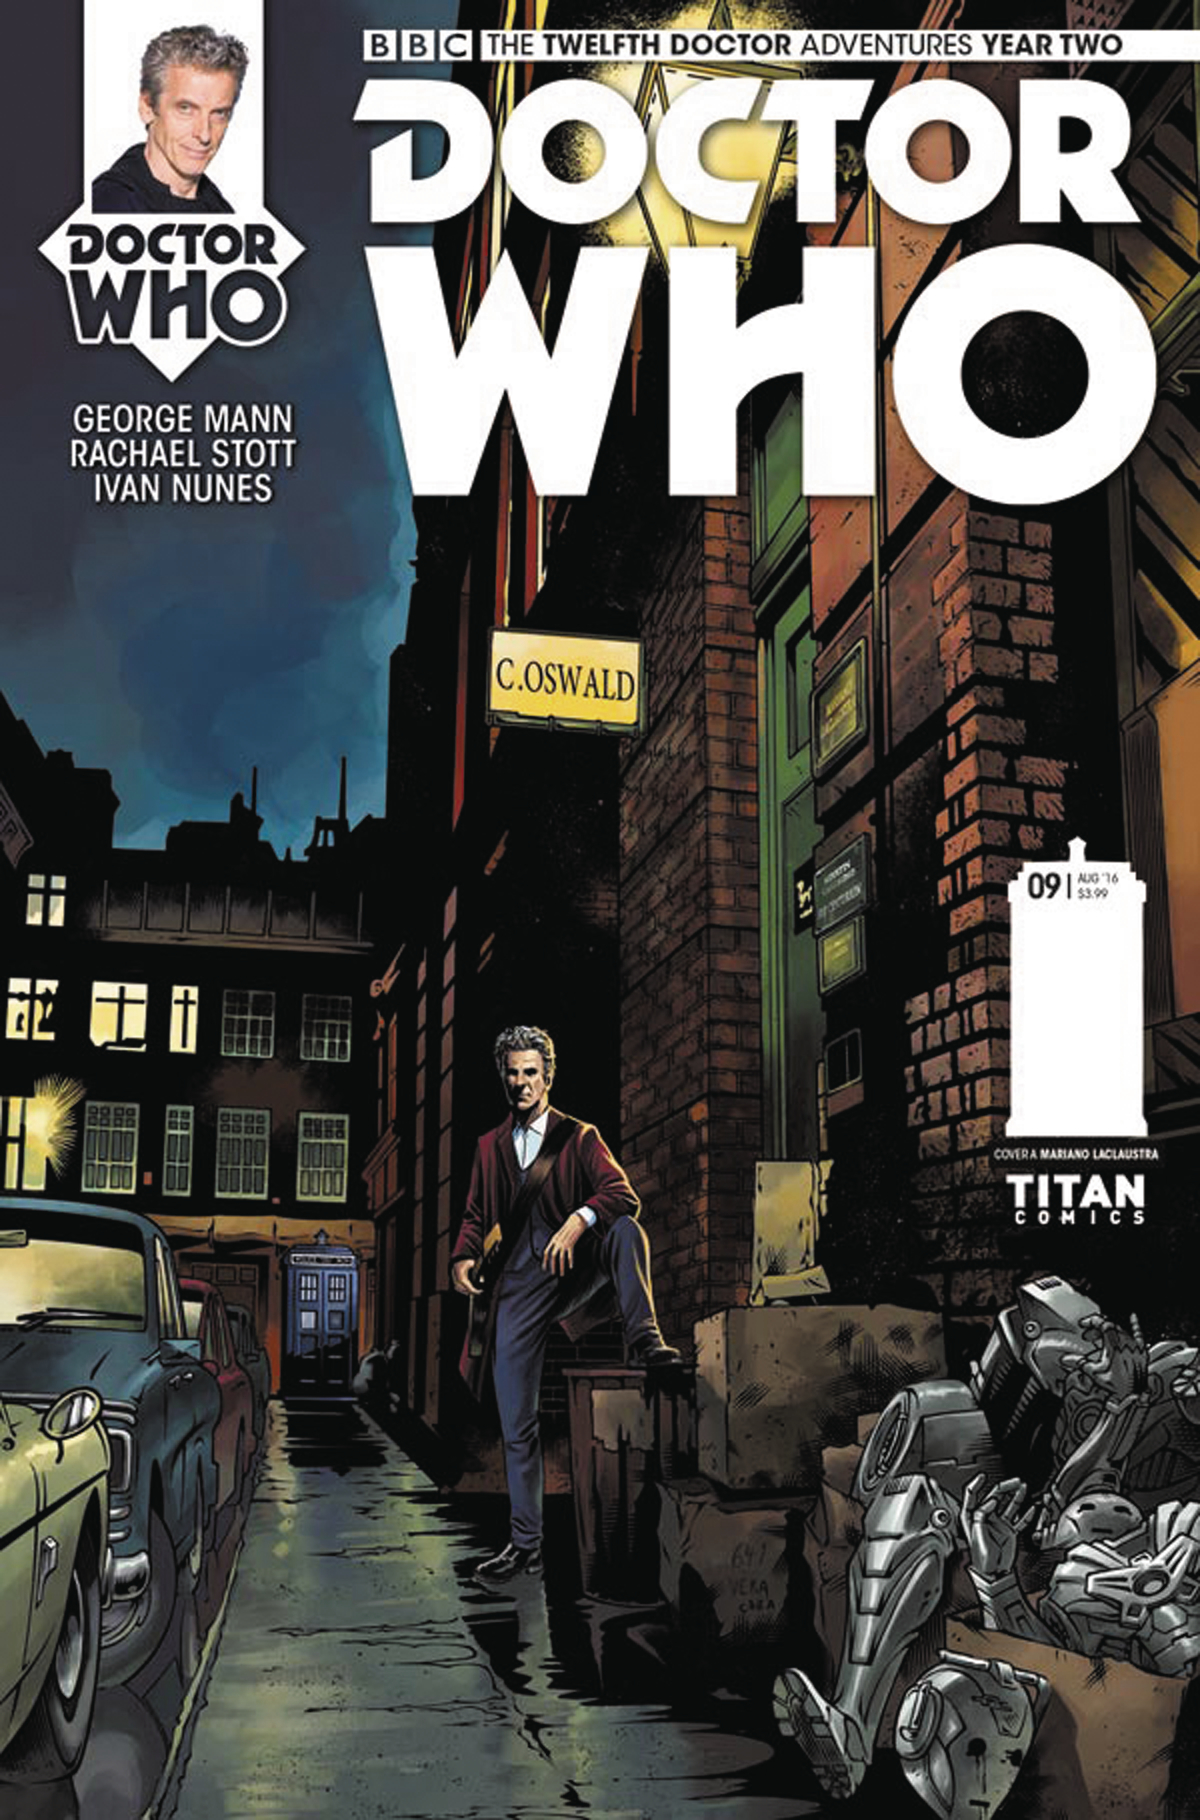 DOCTOR WHO 12TH YEAR TWO #9 CVR A LACLAUSTRA